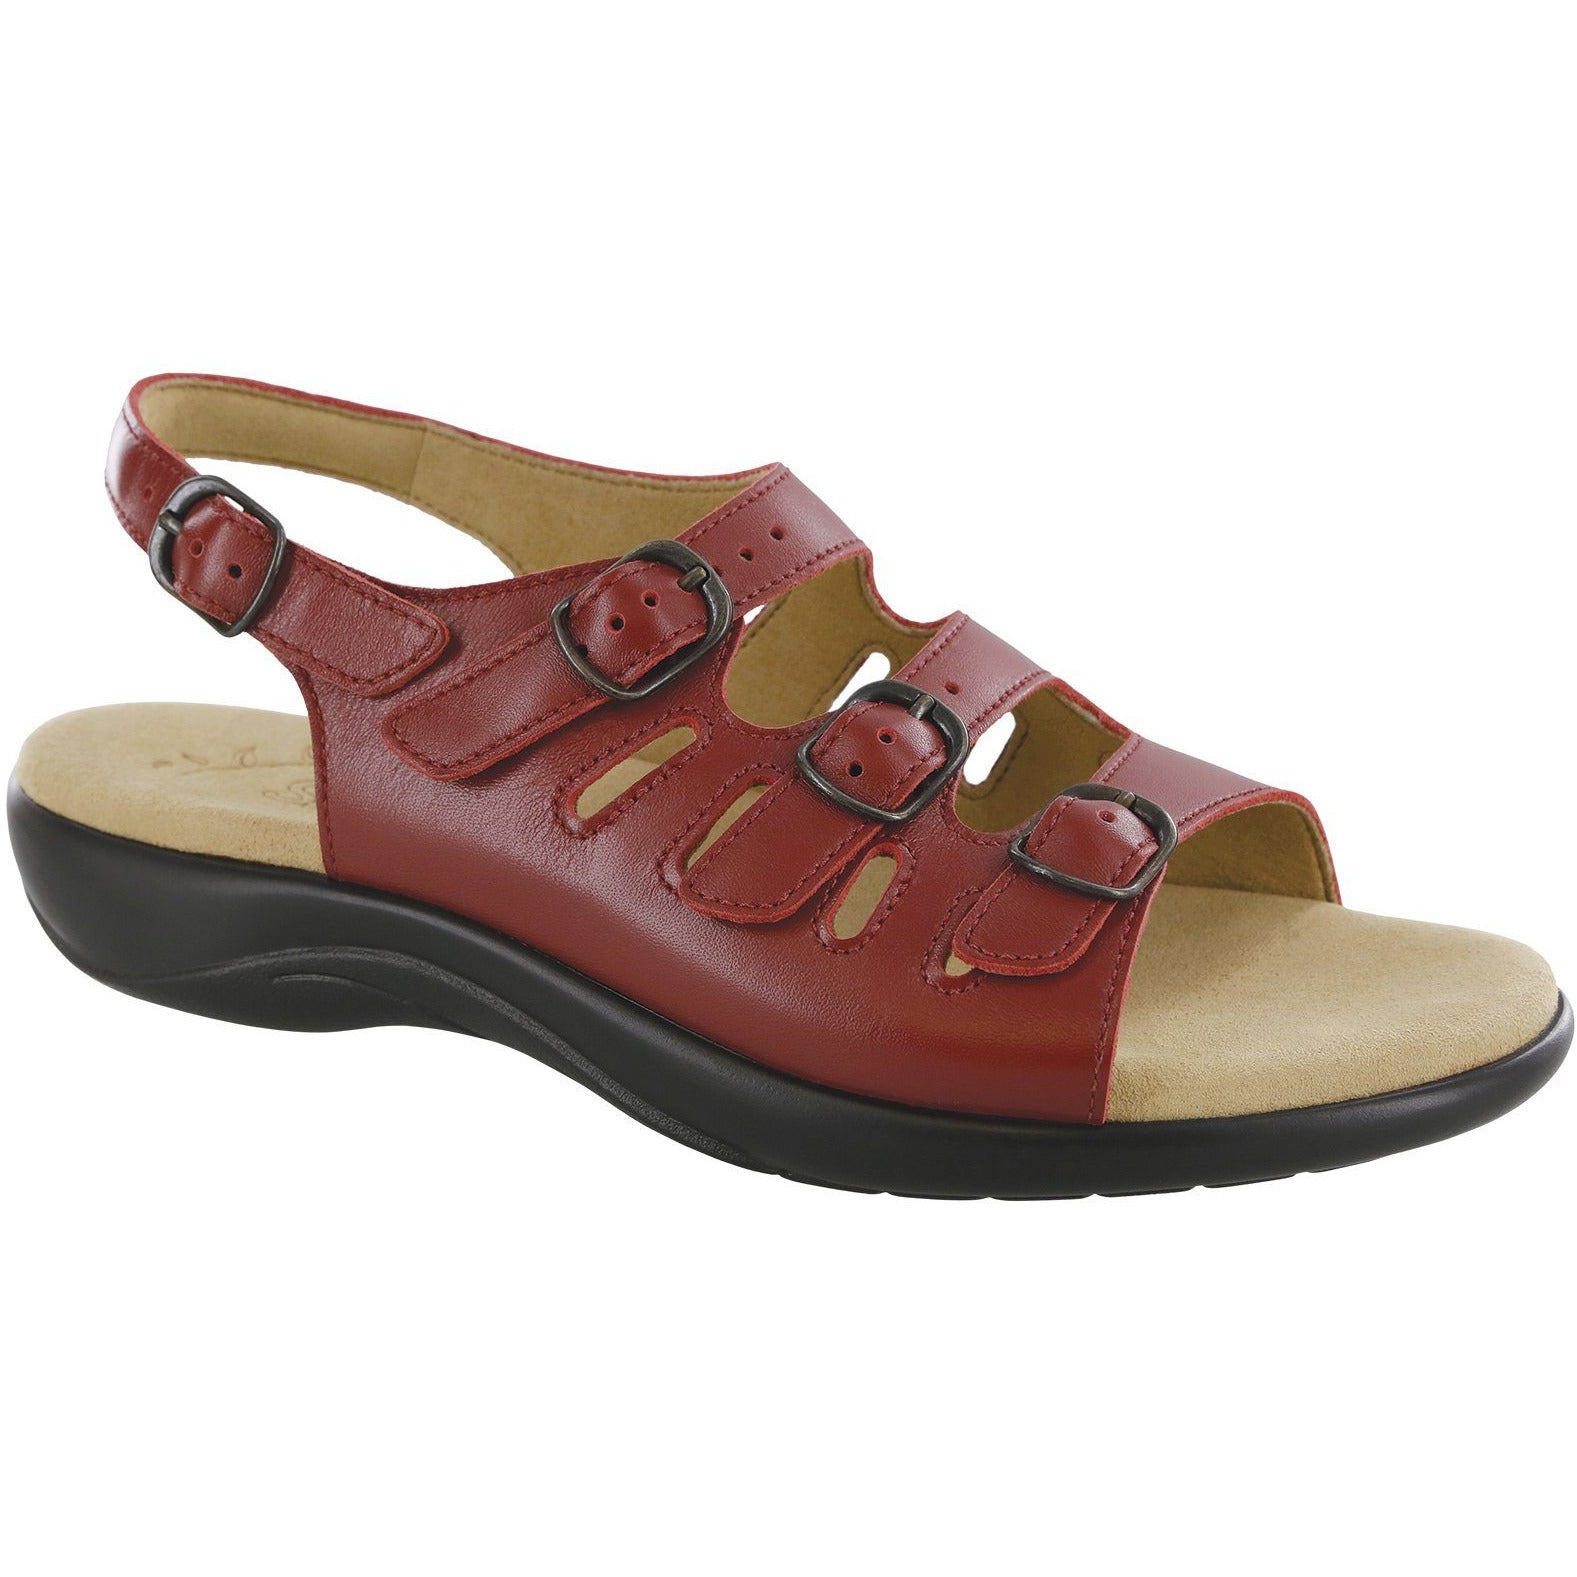 Mystic Ruby by SAS Shoes: Comfort Women's Sandals